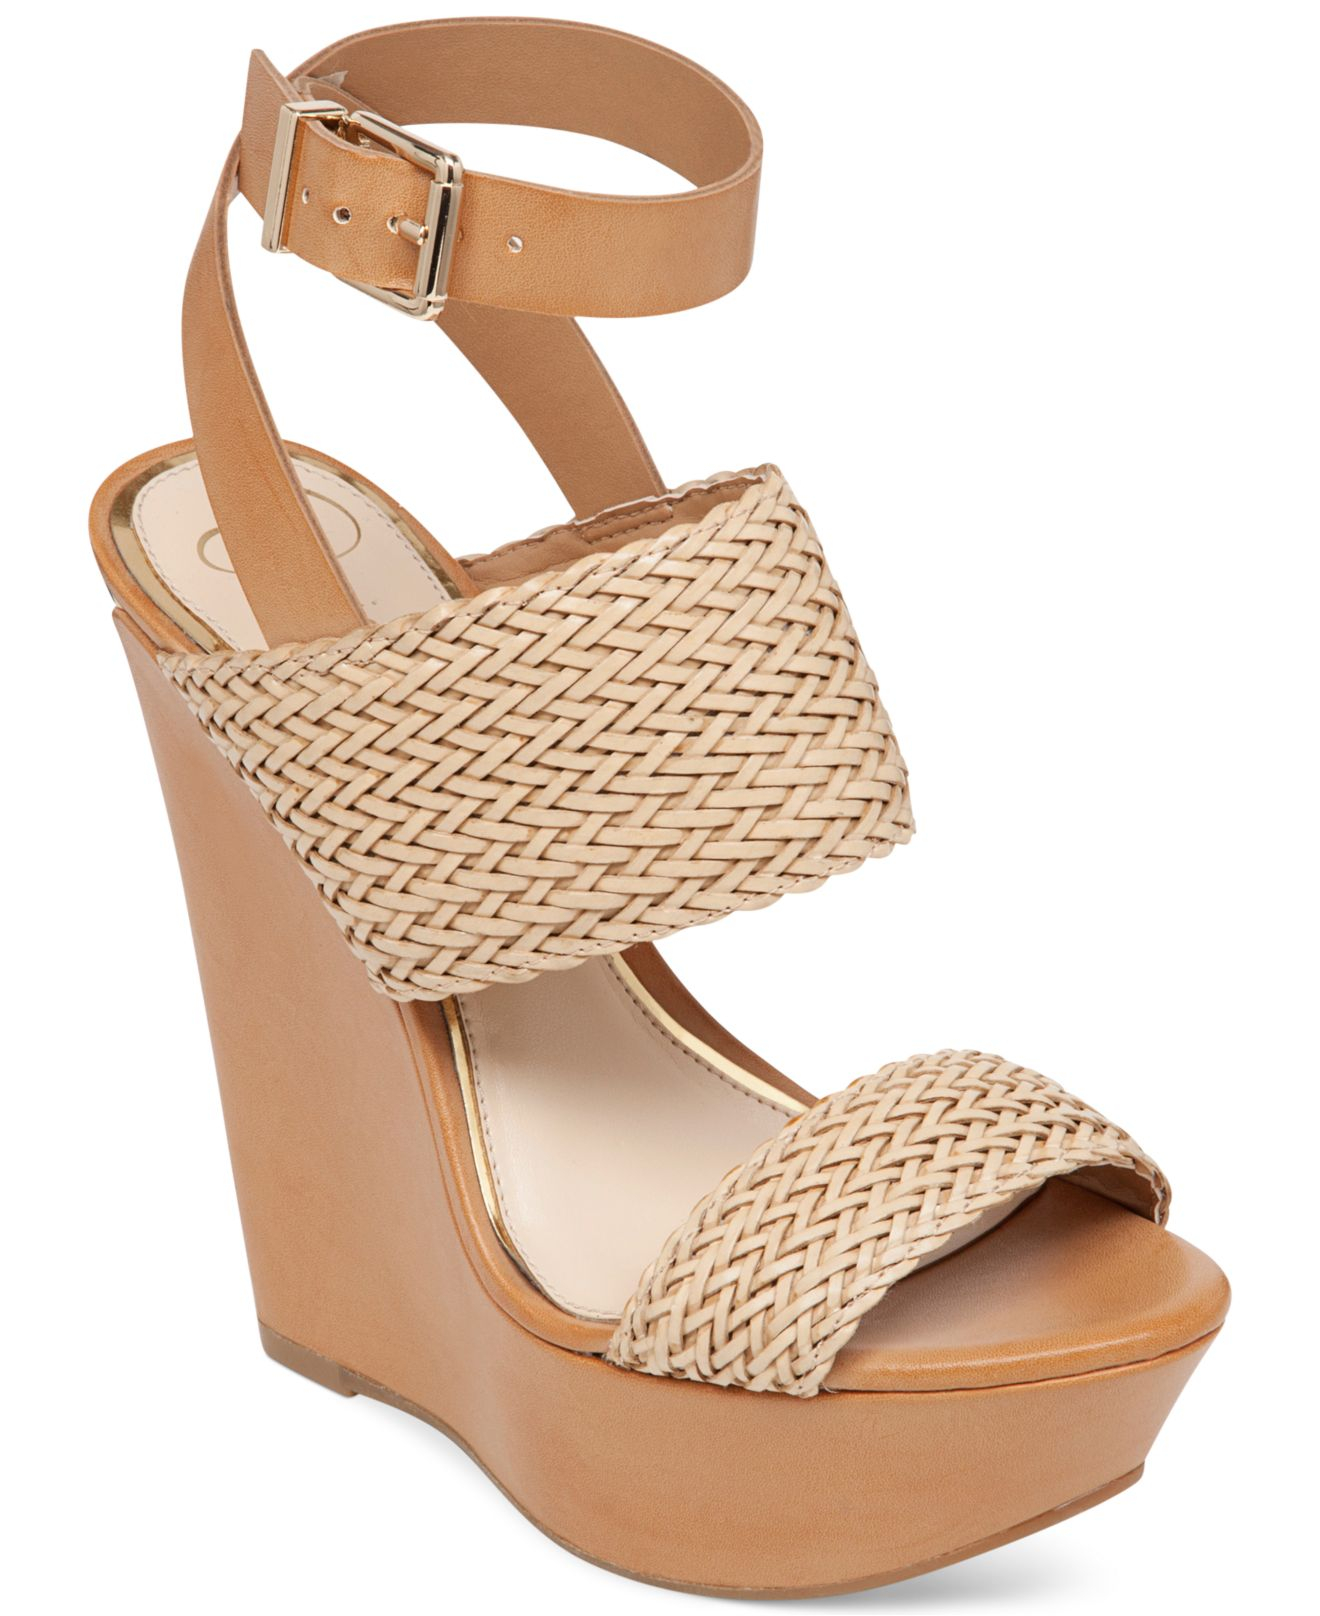 d5299c4d814 Lyst - Jessica Simpson Eila Two-piece Woven Platform Wedge Sandals ...